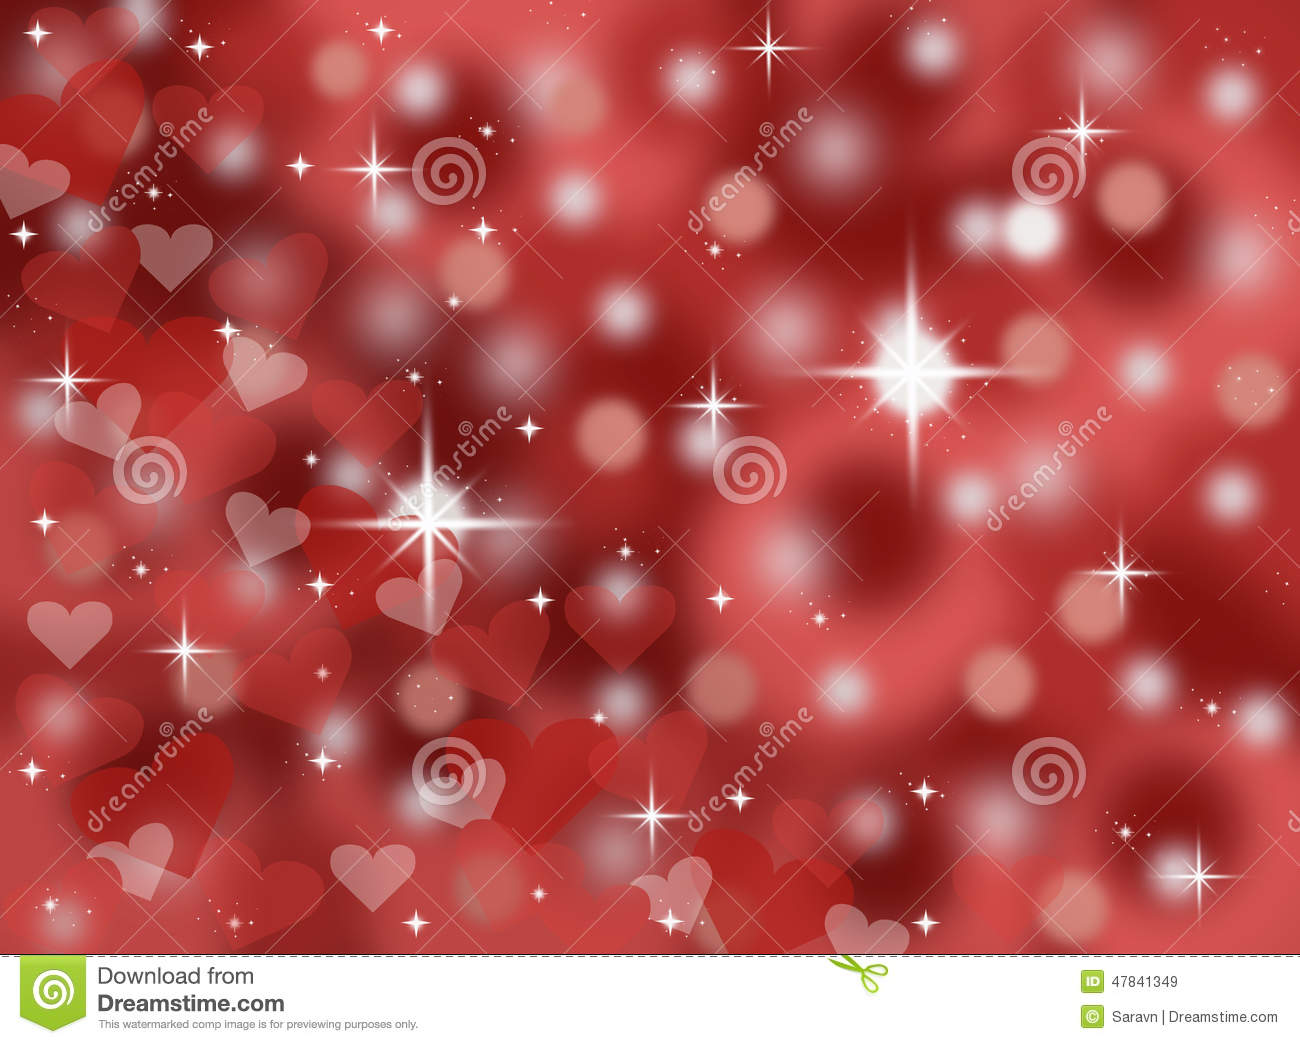 b99dc7f3008 Dark red abstract bokeh valentines day card background illustration with  sparkles and stars stock illustration